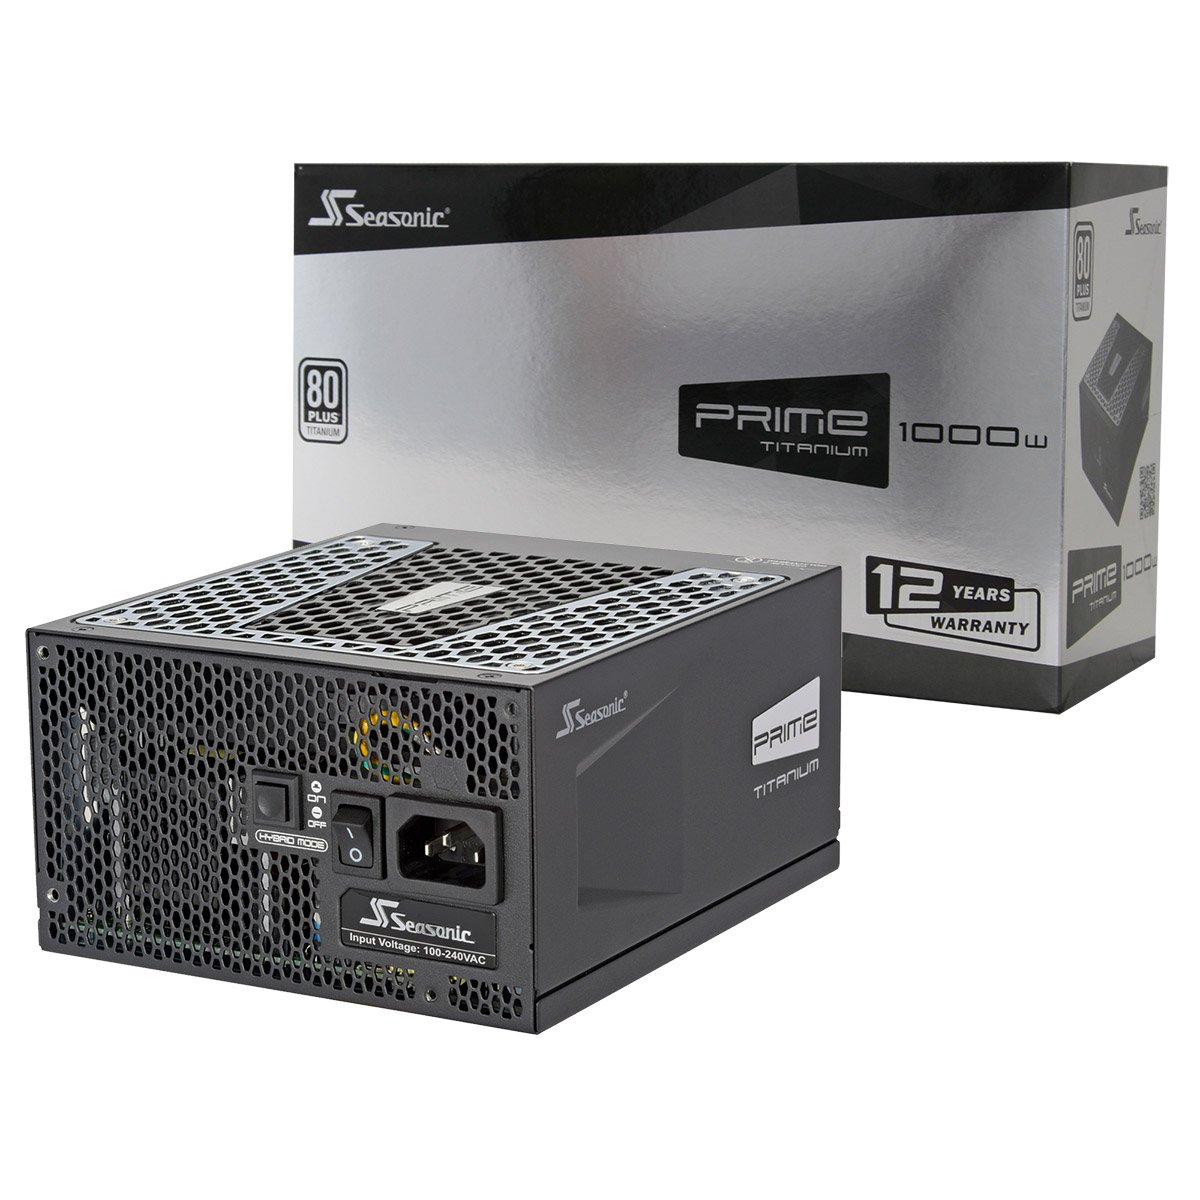 Seasonic SSR-1000TD Flagship PRIME SERIES 1000W Titanium Full Modular ATX12V & EPS12V 135mm FDB Fan Super Quiet Power Supply